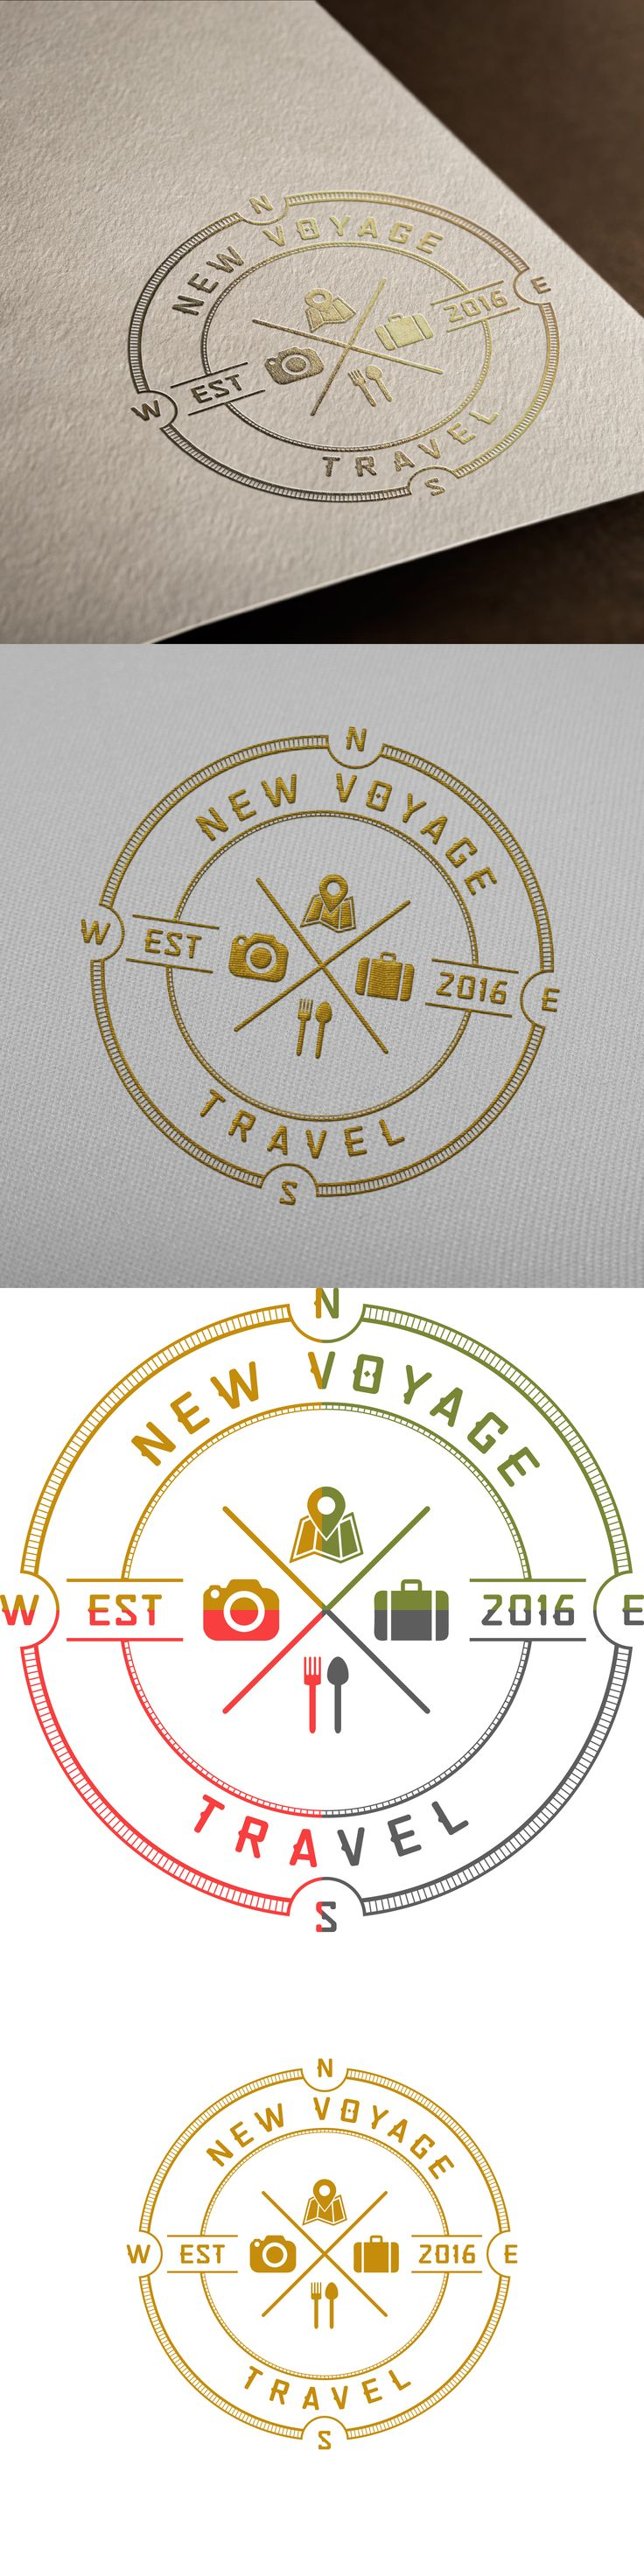 Logo design for NEW VOYAGE TRAVEL